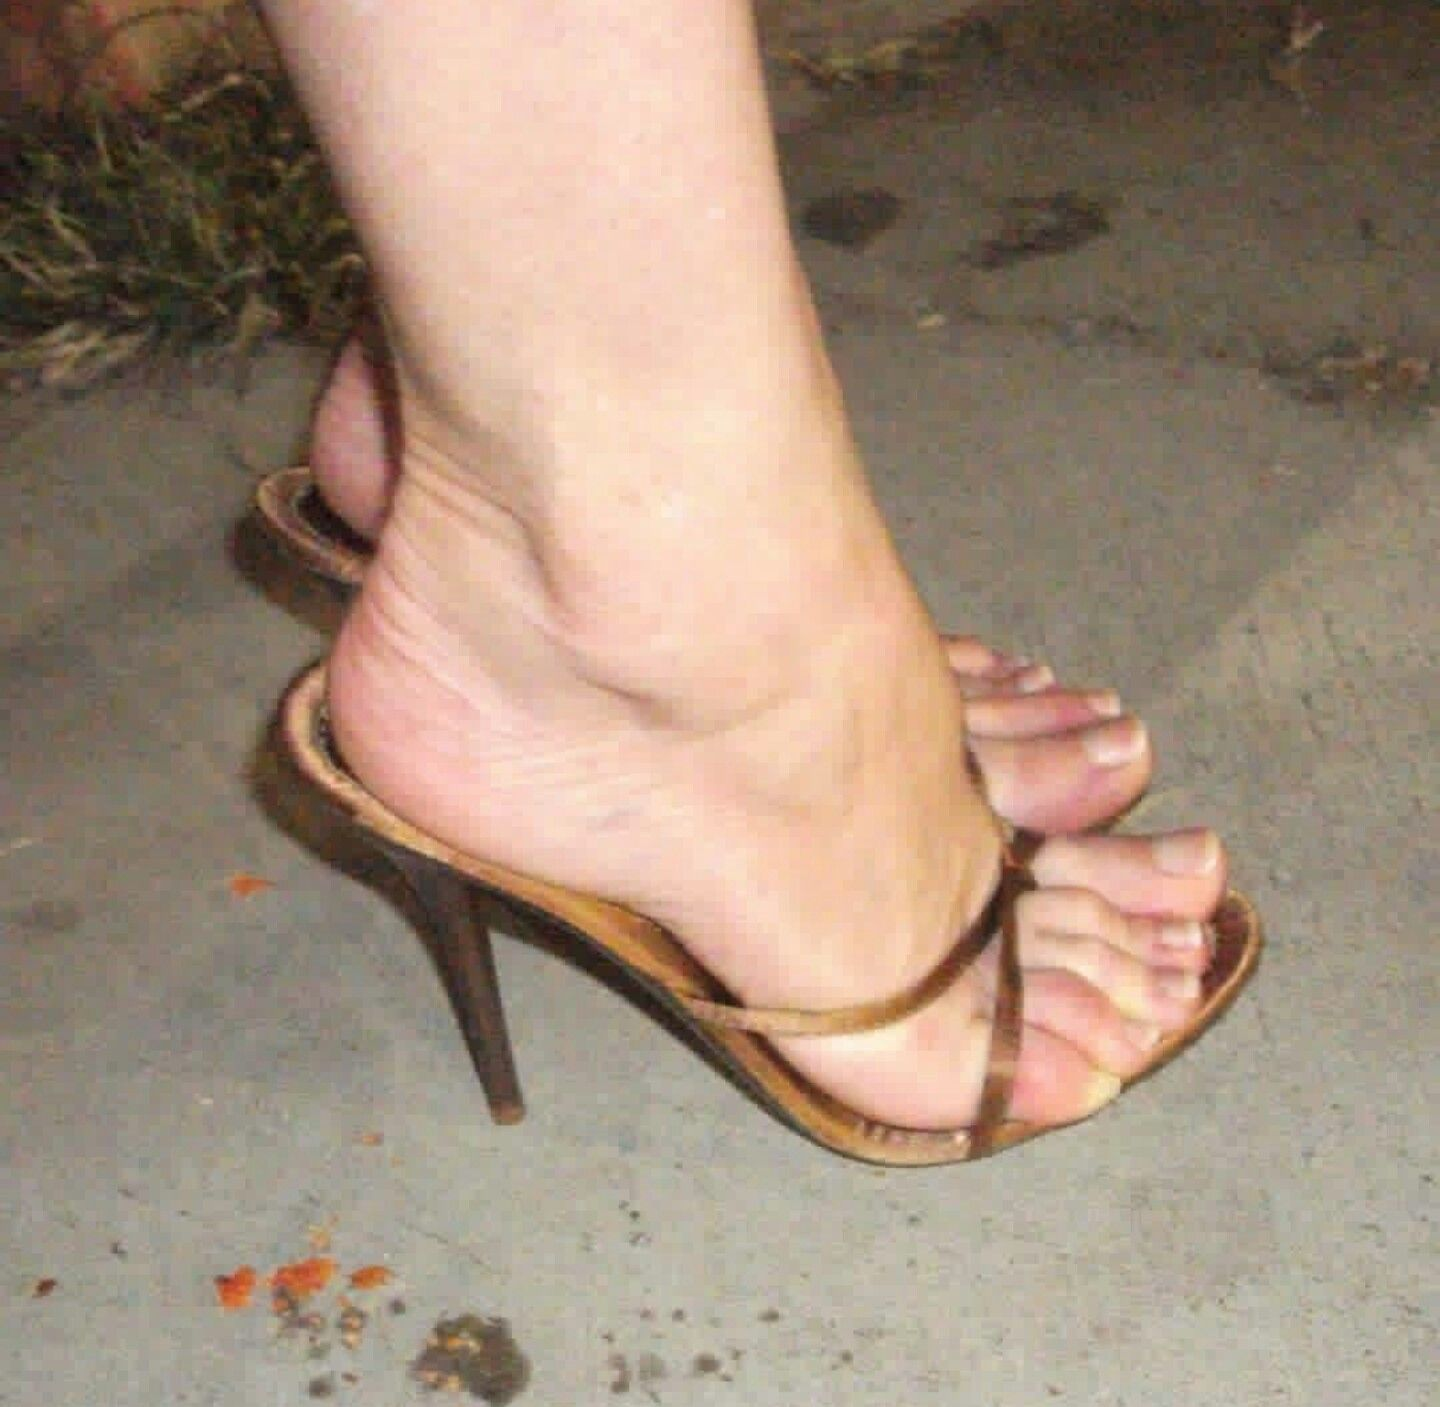 Pretty Toes, Female Feet, Sexy Heels, High Heels, Ladies Shoes, Real Women,  Smooth, Shell, Poses